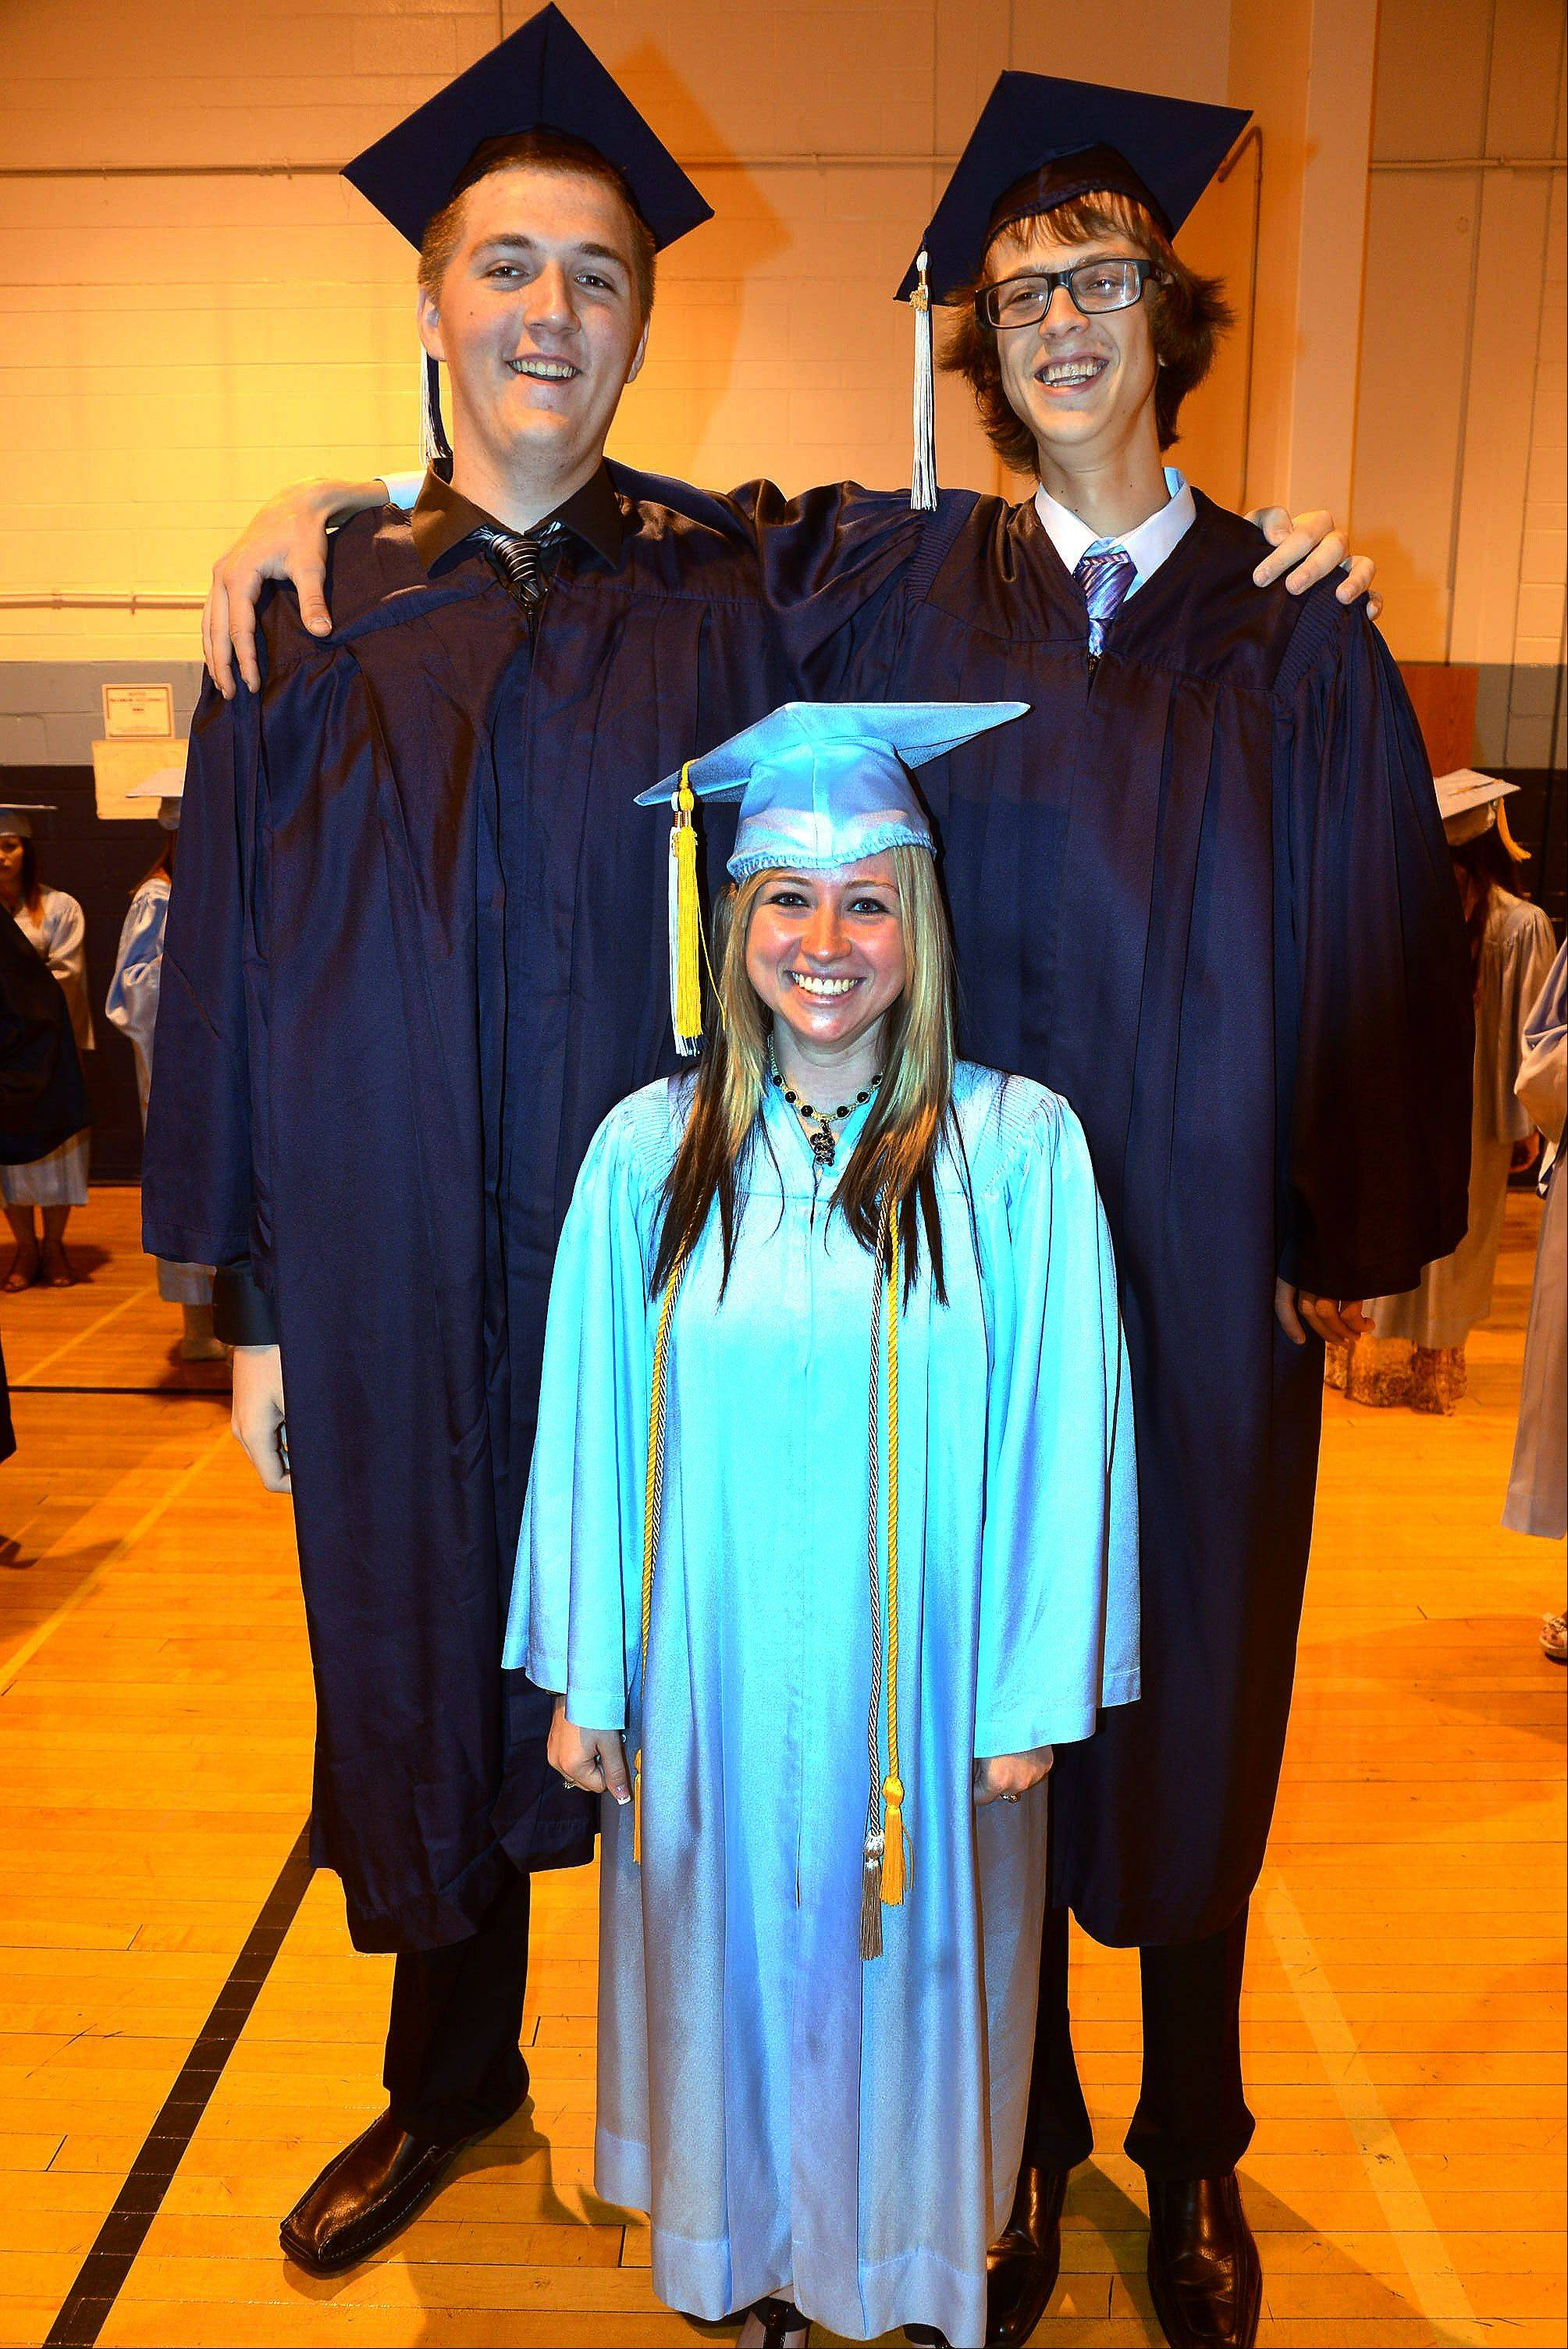 7-foot-1-inch Chris Huene, left, and 6-foot-9-inch Chris Drozd, dwarf 5-foot Annie Potts as they pose for a picture before the Prospect High School graduation.